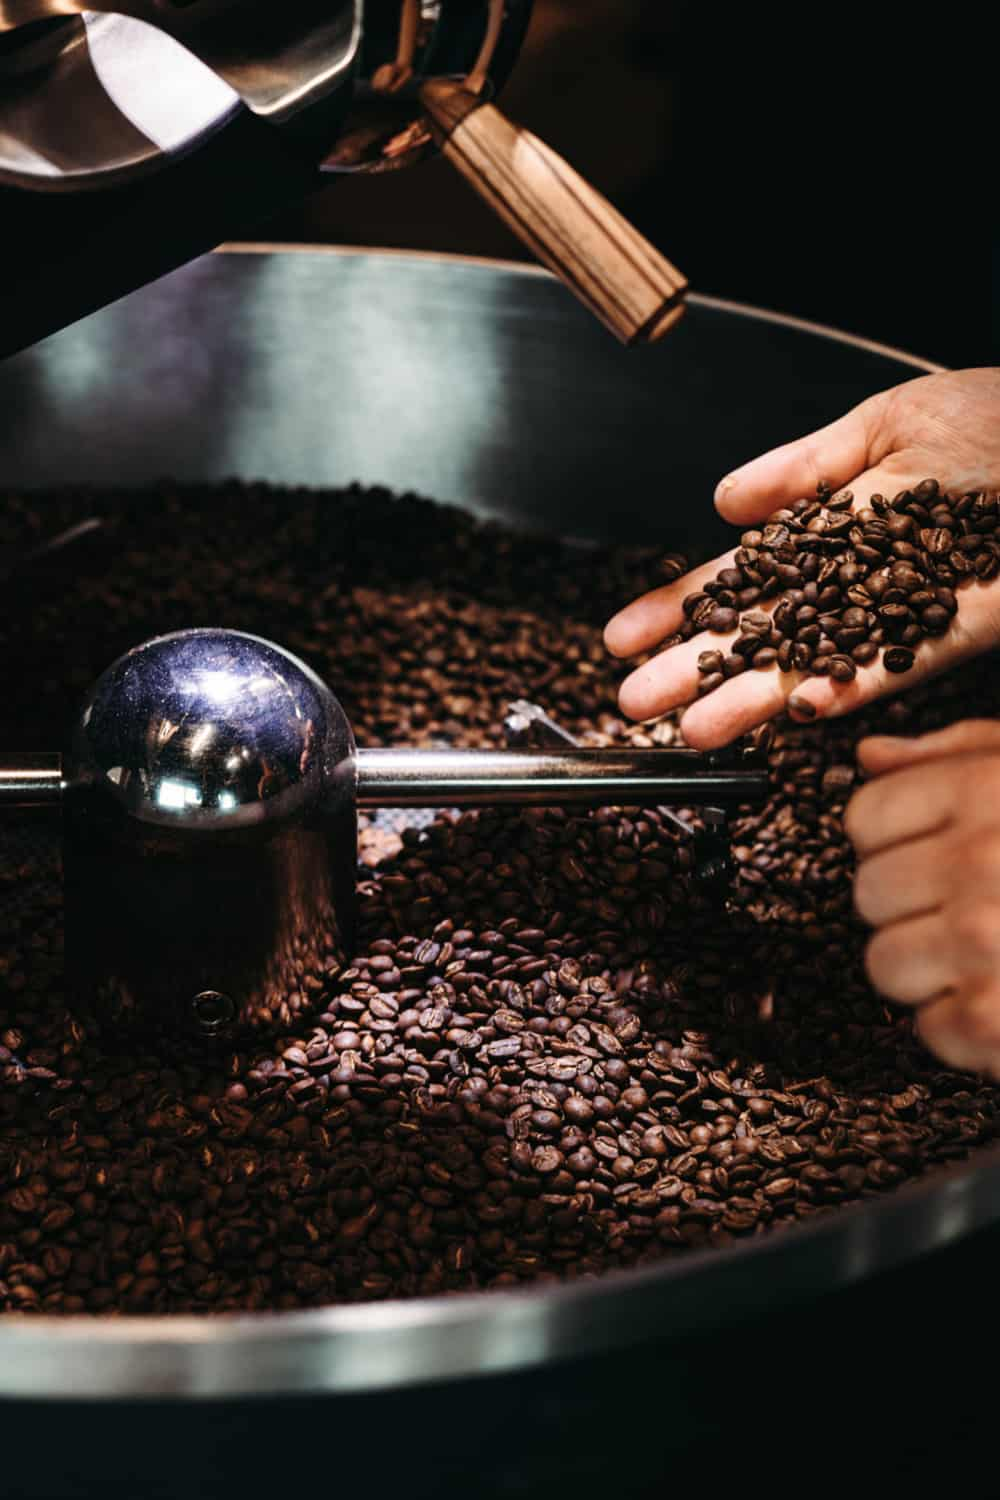 For the best flavor, freshly roasted coffee beans need time to degas